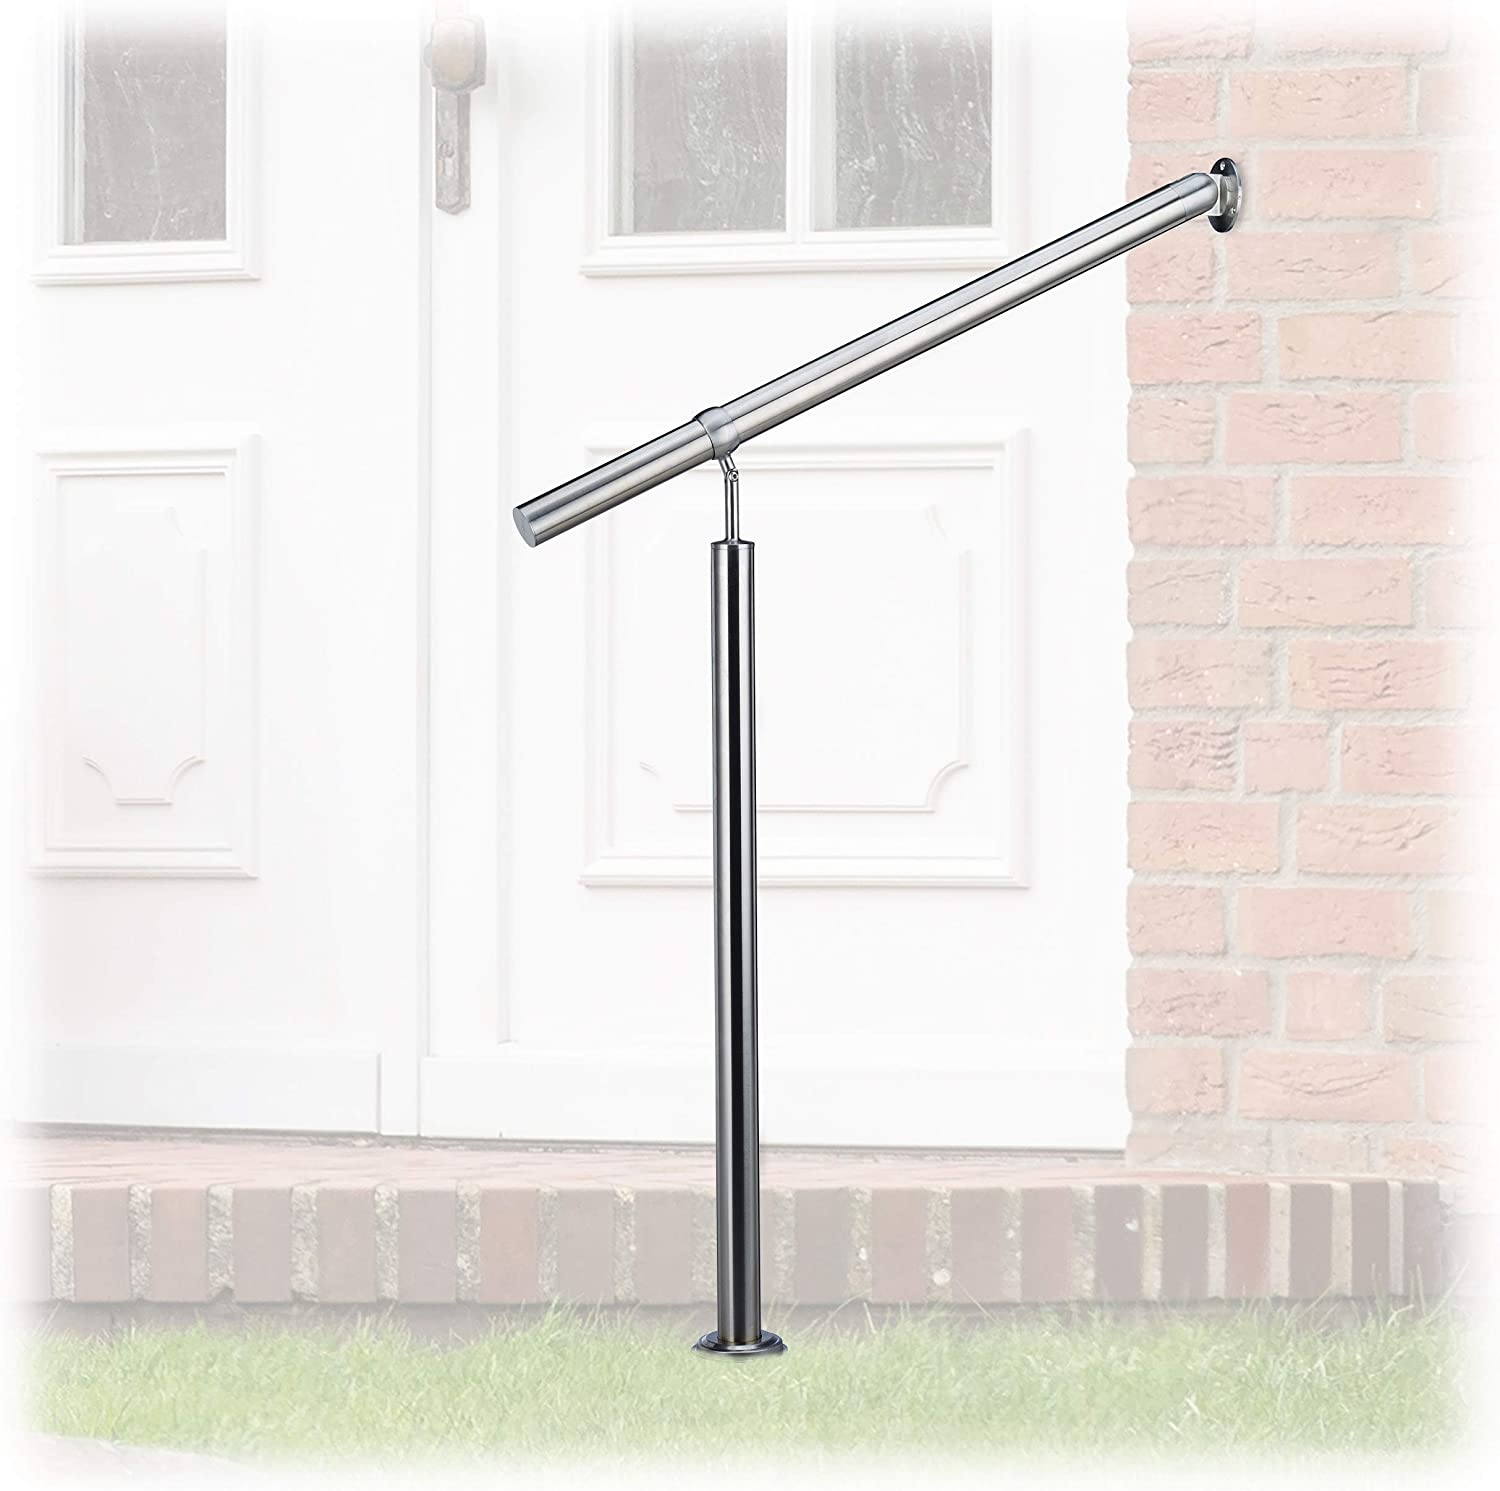 Amazon Com Relaxdays Stainless Steel Handrail For In And Outdoor | Stainless Steel Outdoor Handrails | Safety | Stainless Pipe | Hand Rail | Tube | Square